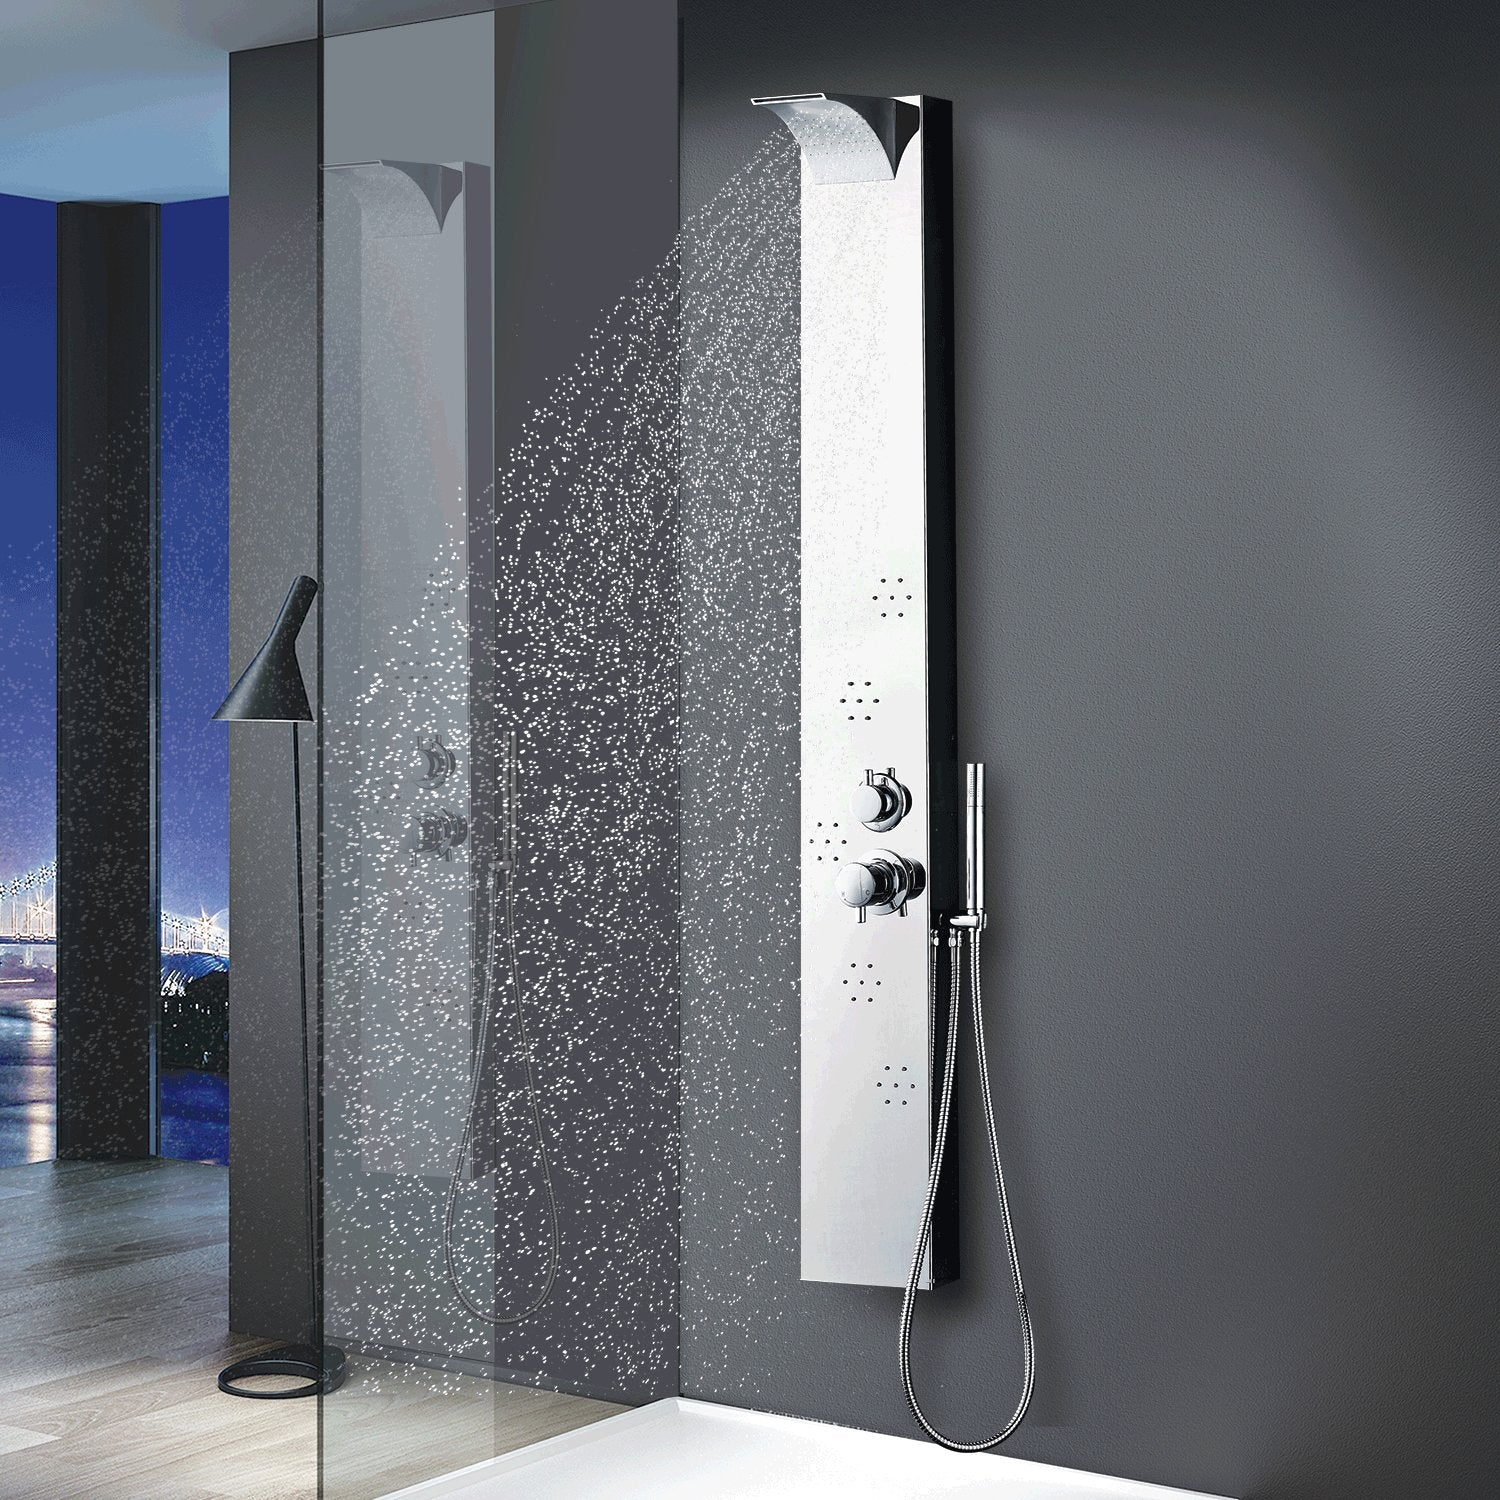 http://www.amazon.com/Vantory-Stainless-Shower-Rainfall-Waterfall/dp/B01EZJH5R2/ref=sr_1_1?ie=UTF8&keywords=shower+panel